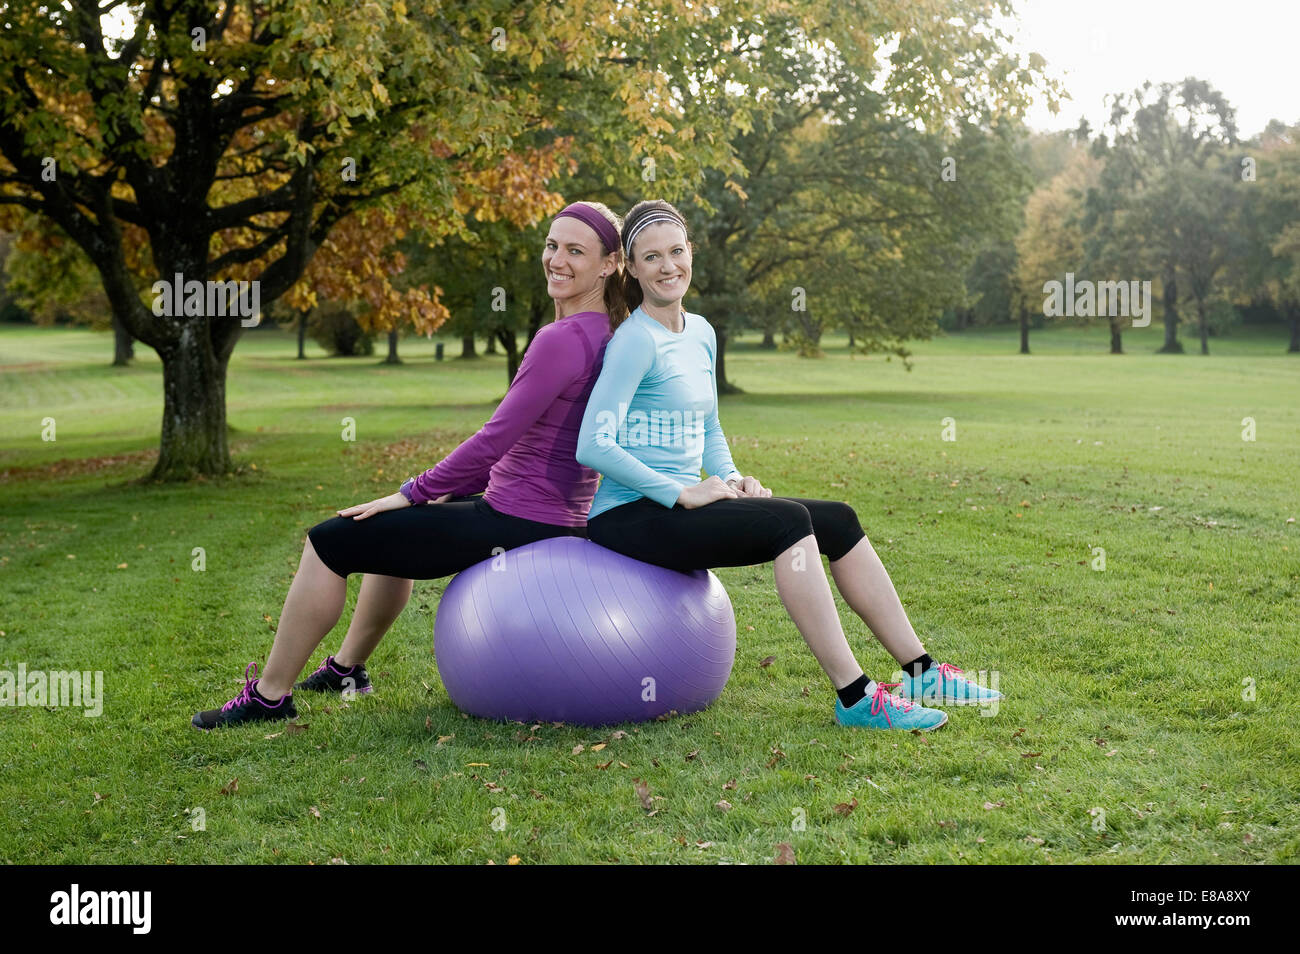 Women exercising in park with fitness ball, Woerthsee, Bavaria, Germany - Stock Image